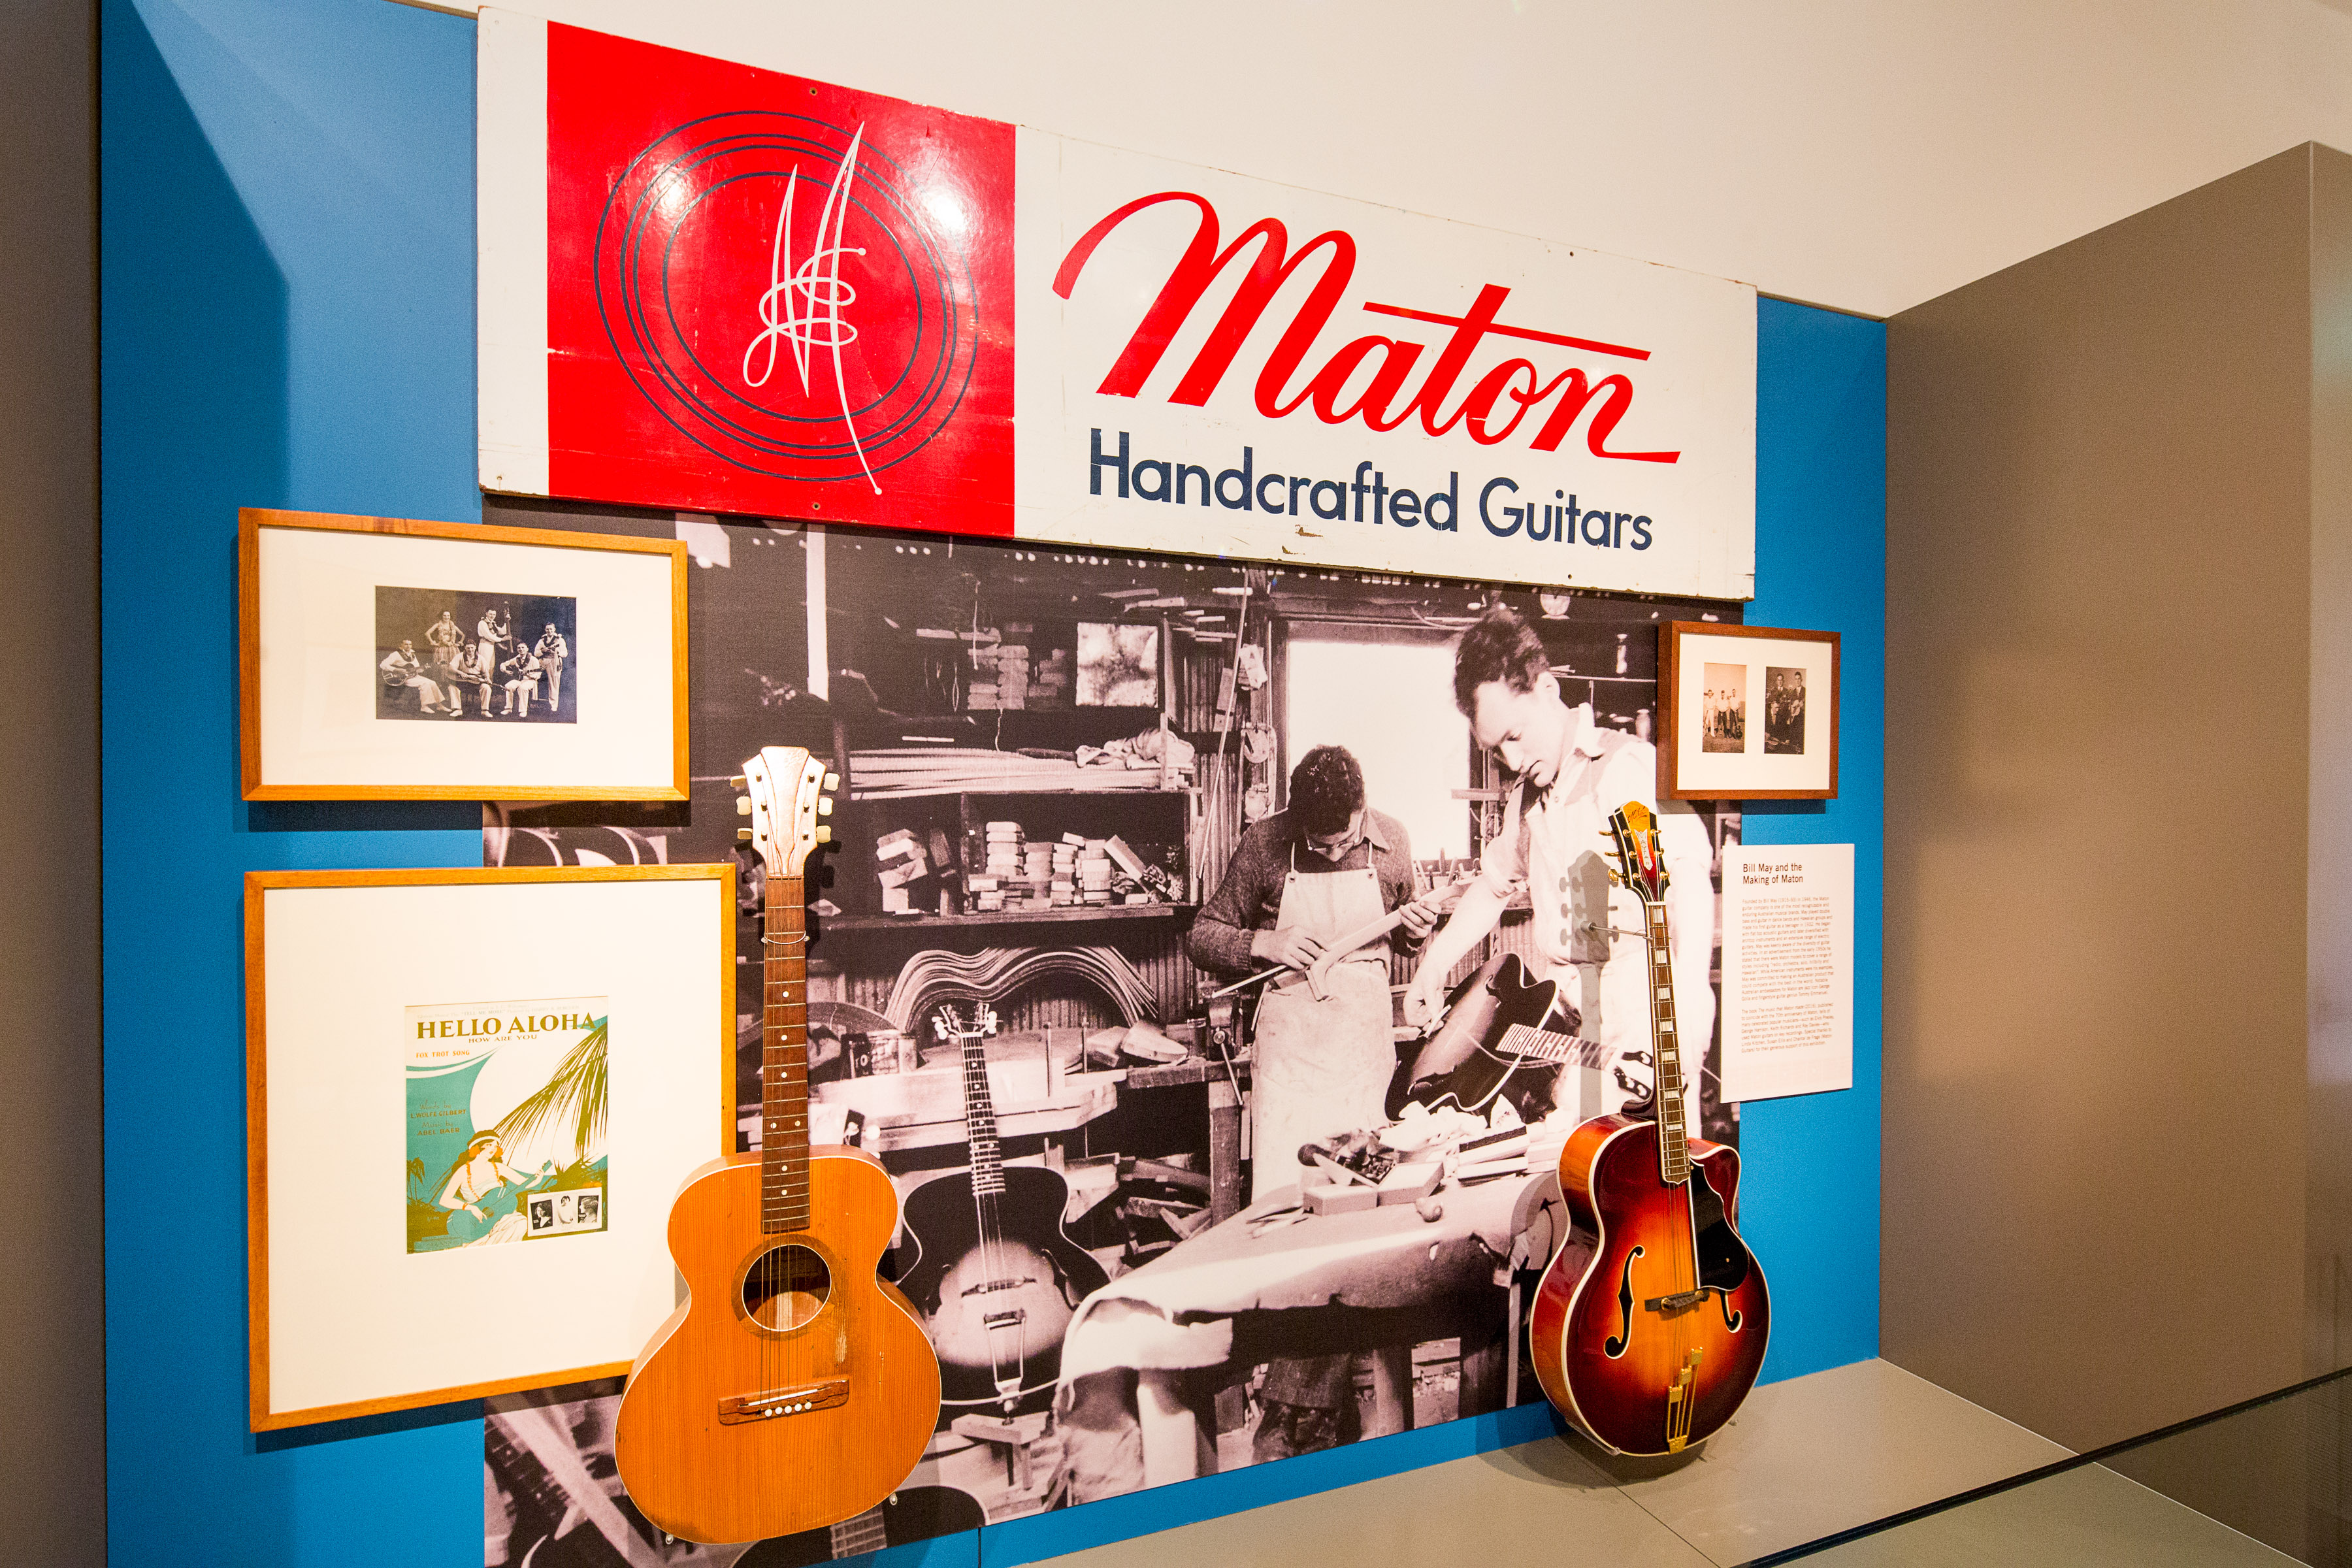 A display of guitars and paraphernalia relating to Maton guitars.